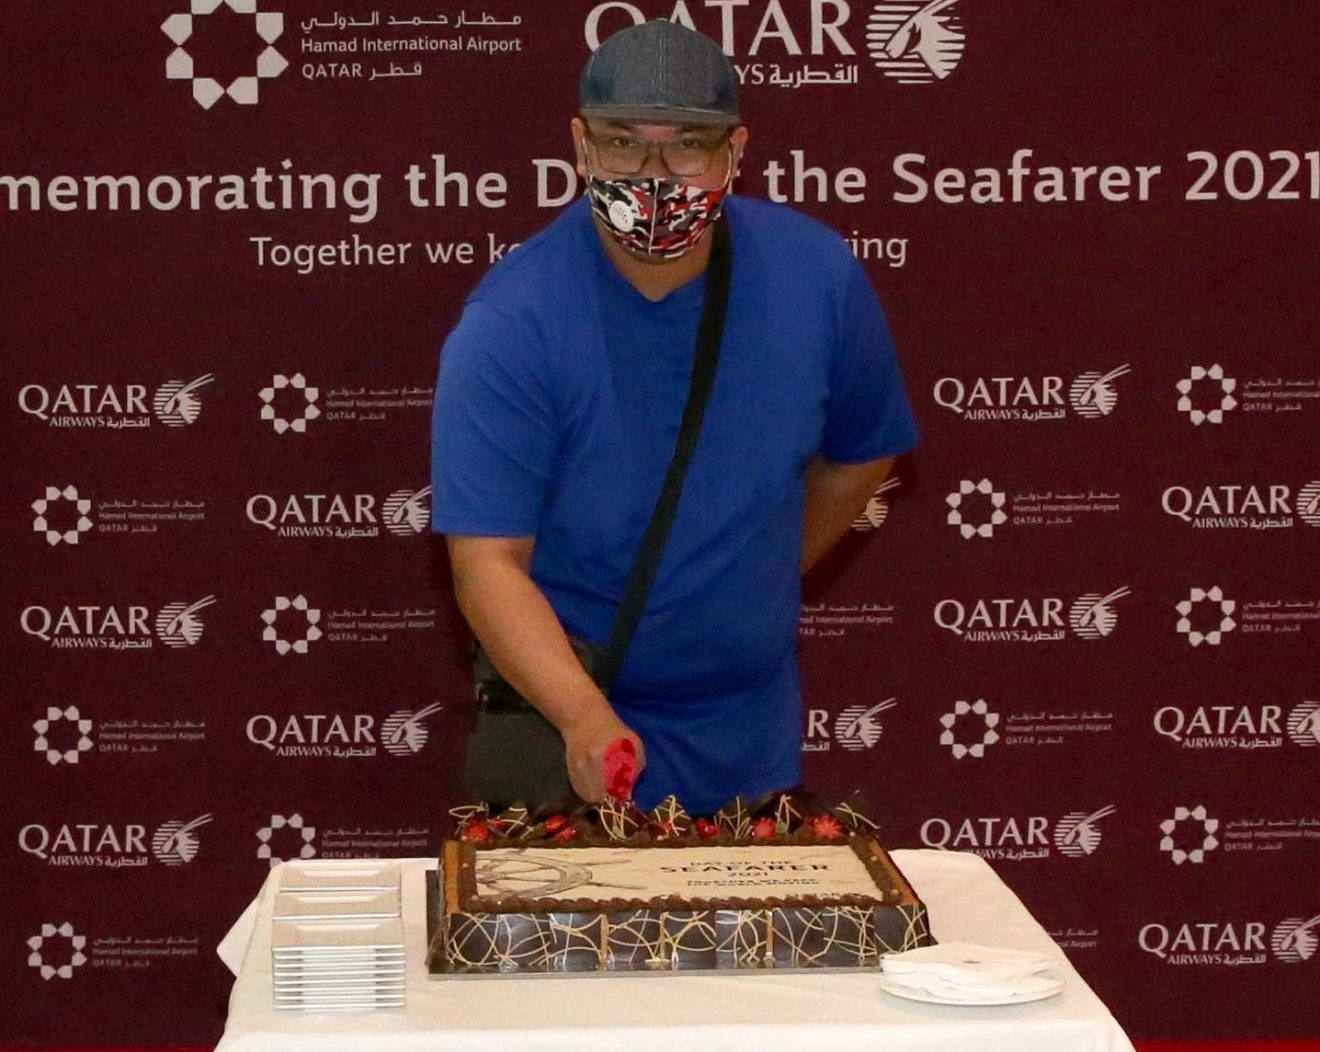 Calm haven for seafarers at Hamad International Airport